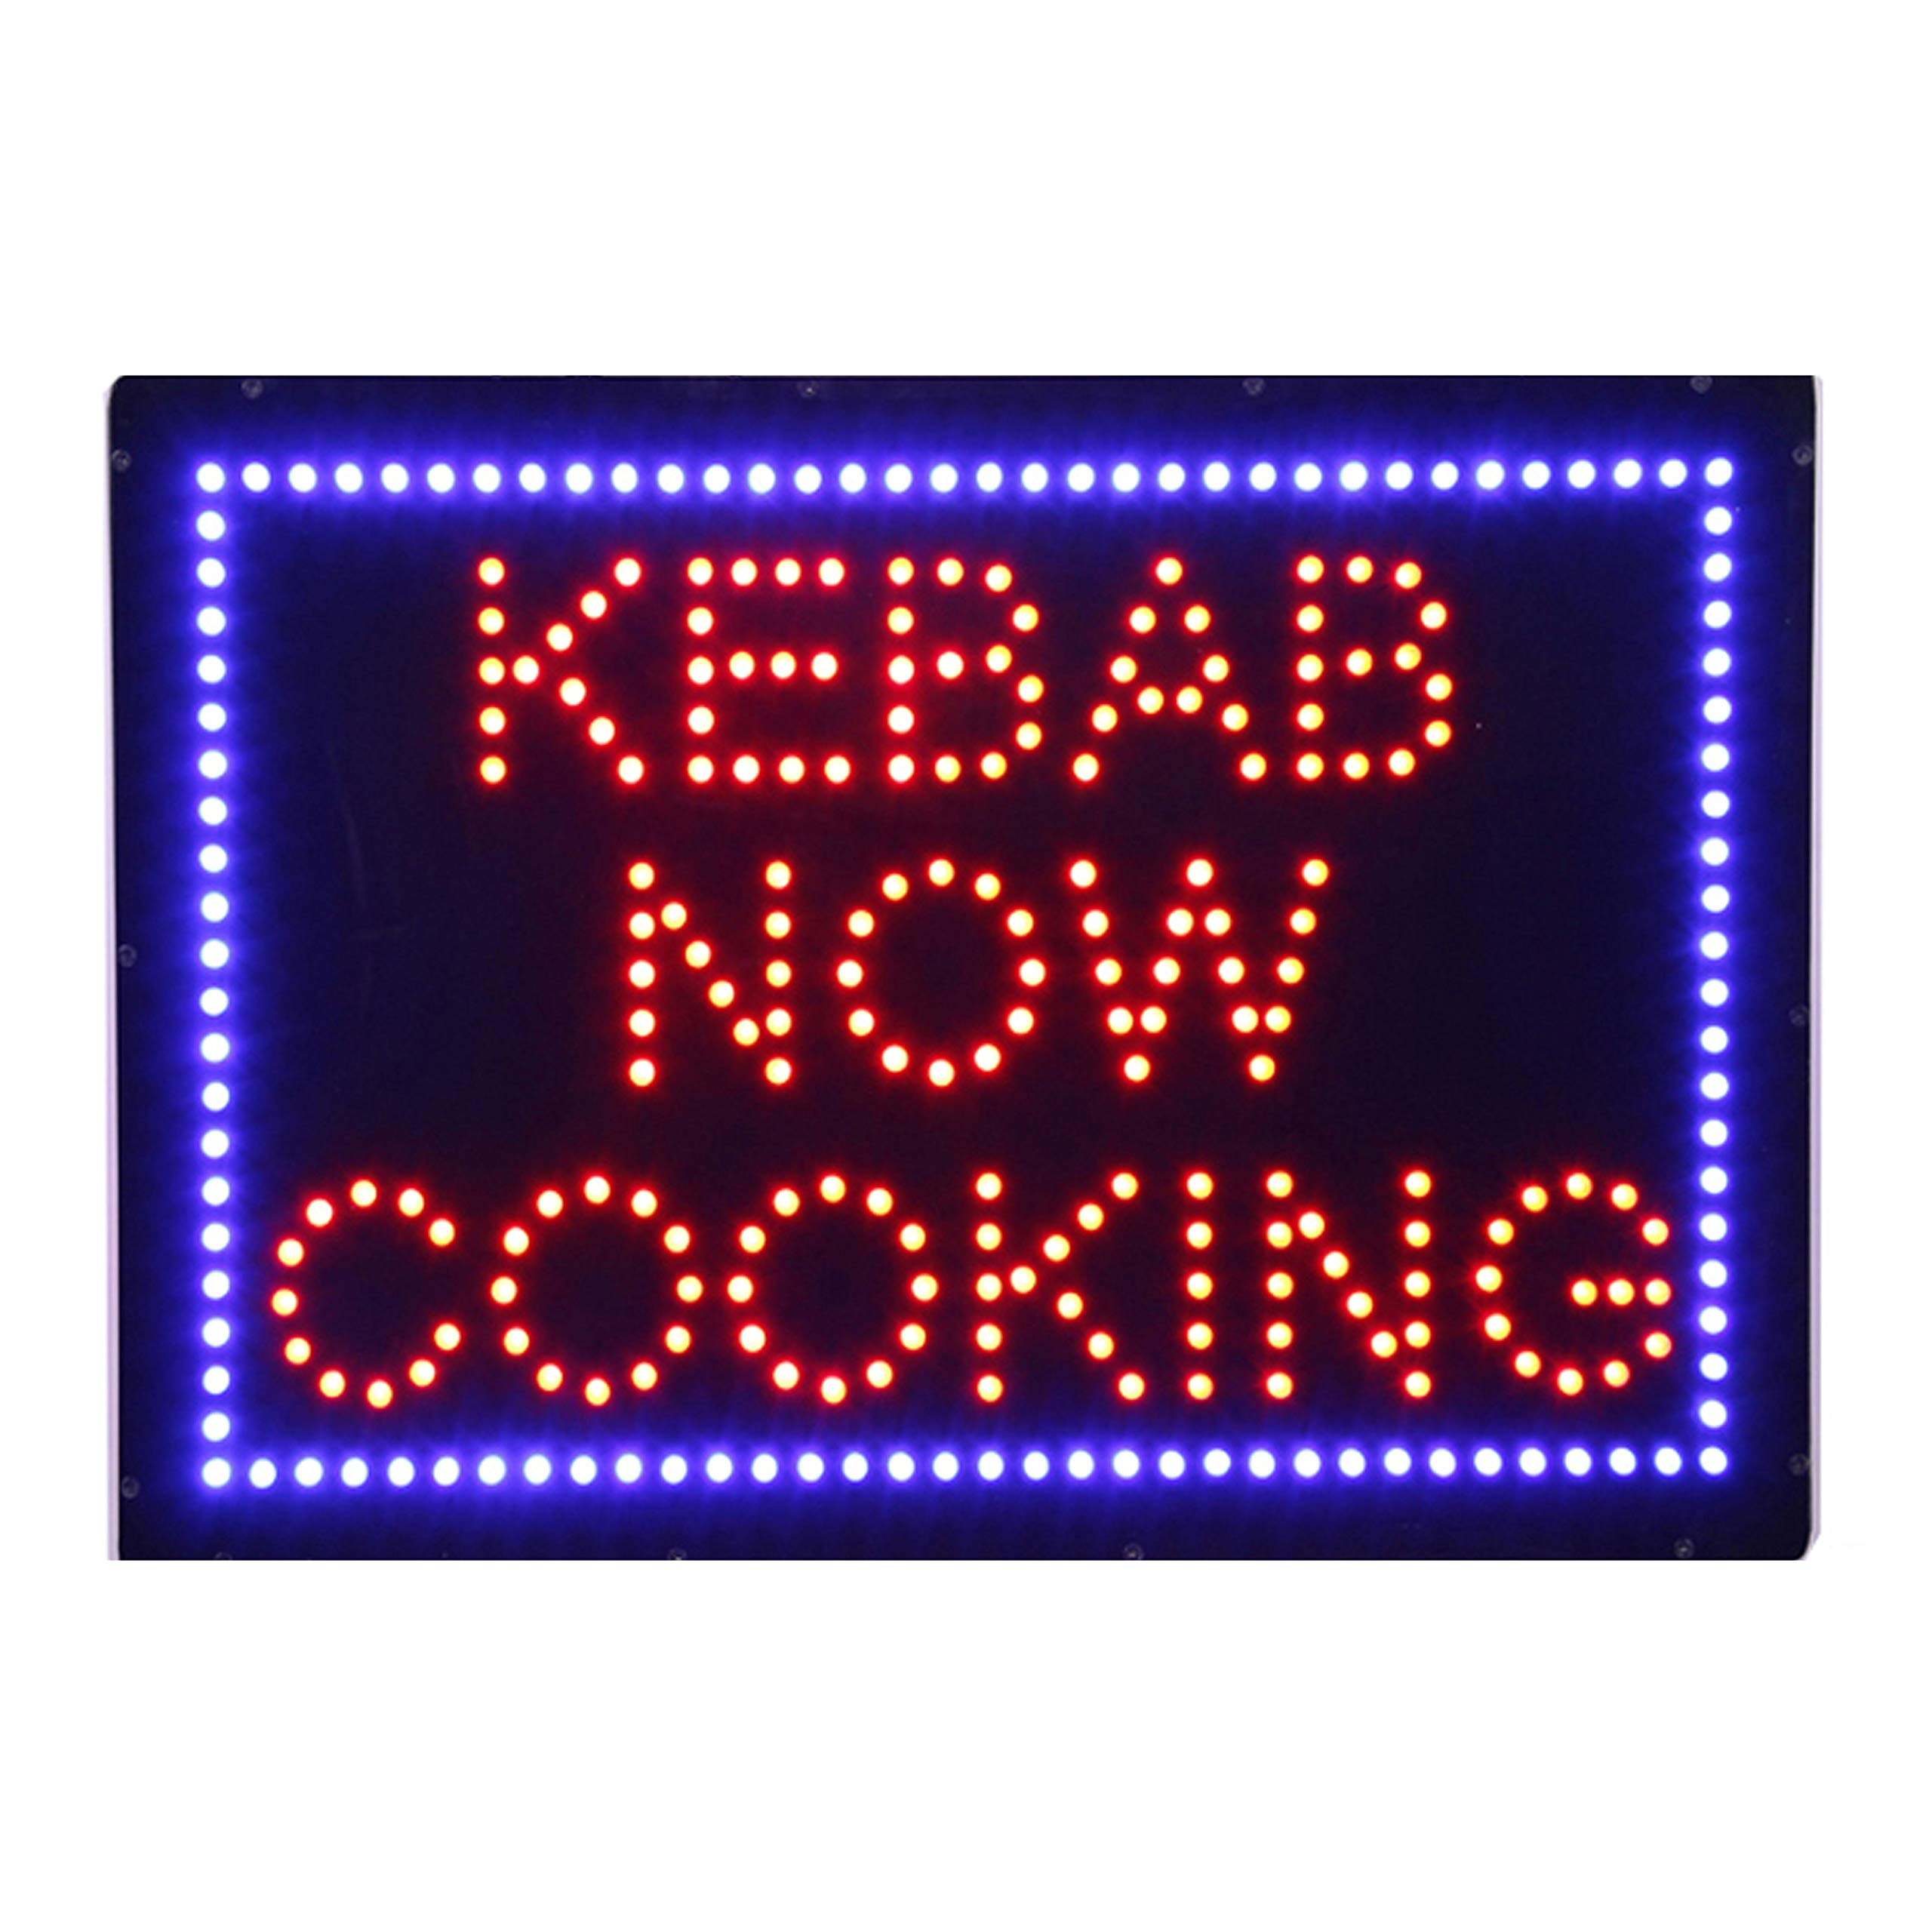 LED Kebab Grill Open Light Sign Super Bright Electric Advertising Display Board for Pizza Turkish Mediterranean Food Fare Business Shop Store Restaurant Window Bedroom Decor 24 x 16 inches by HIDLY